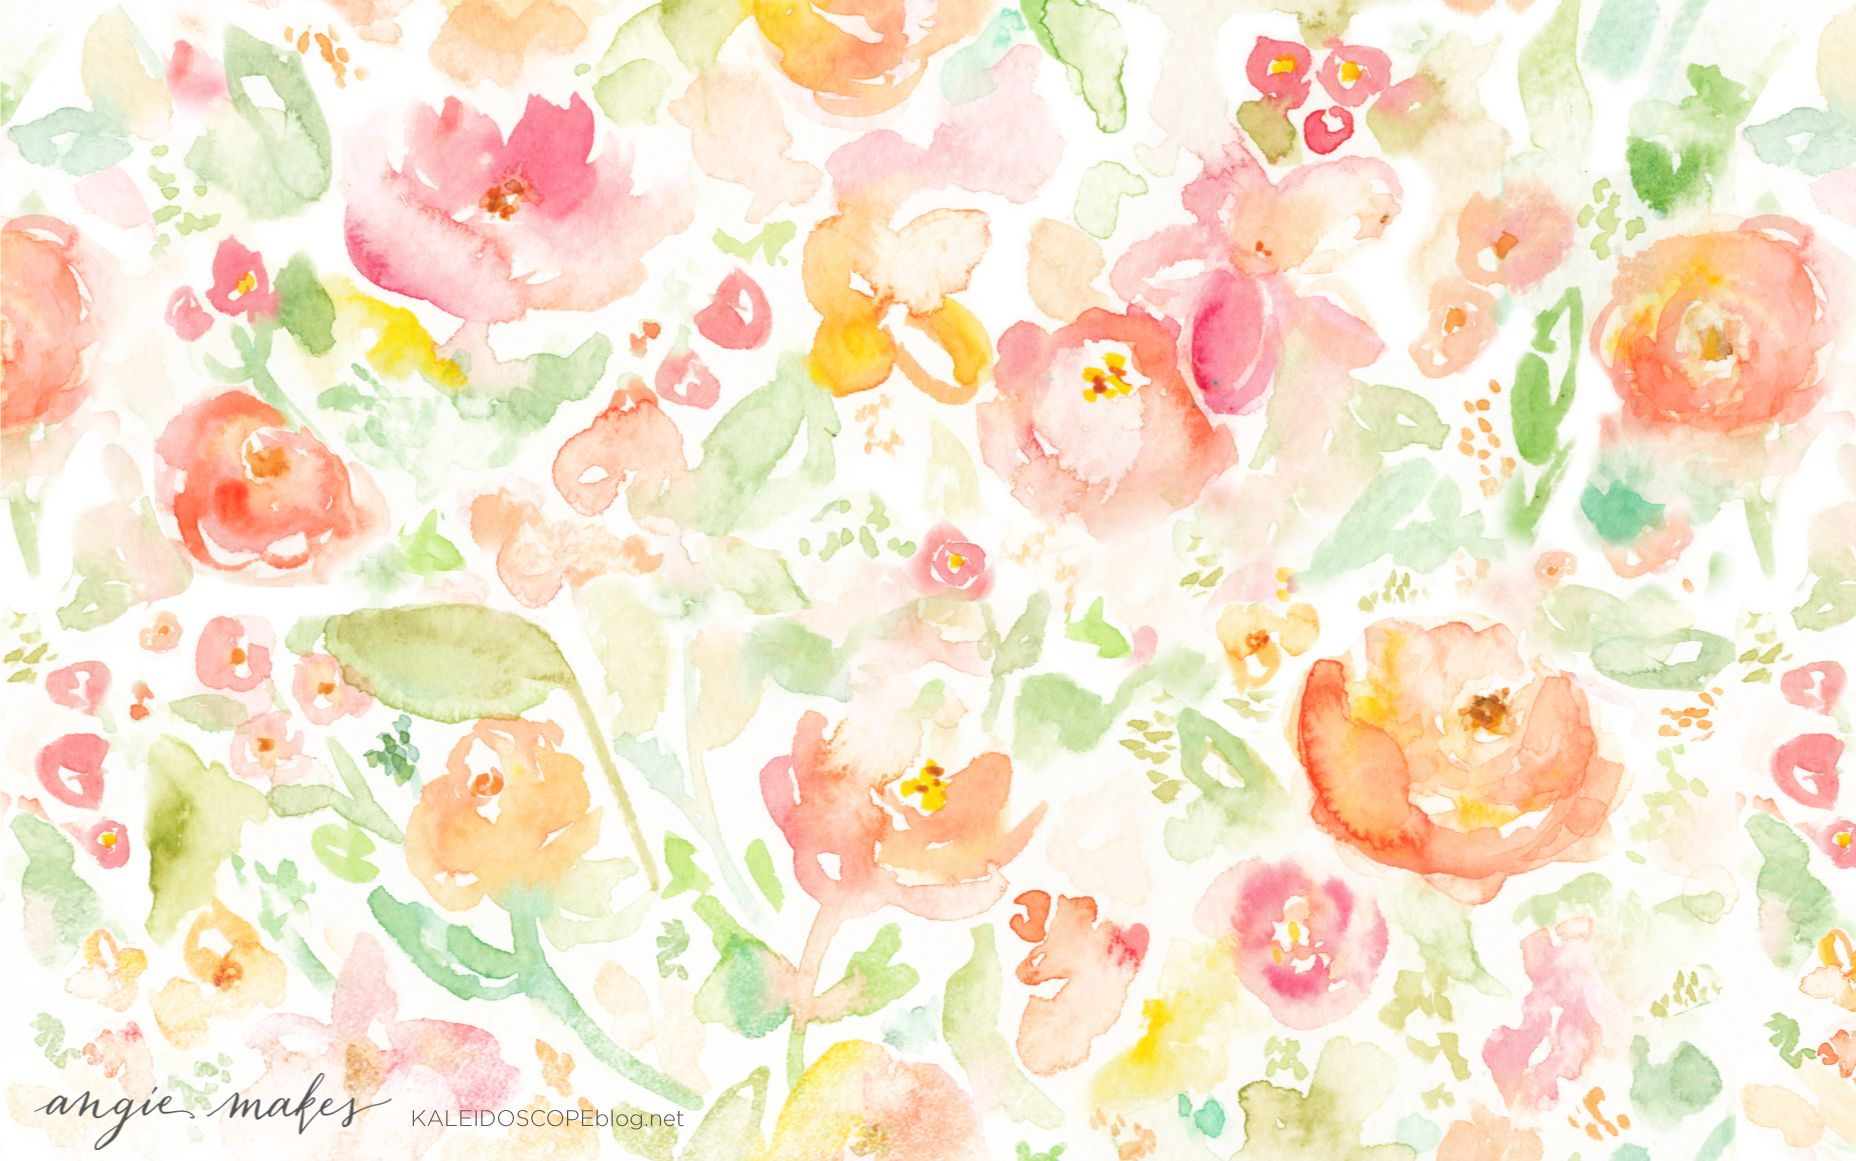 Watercolor Foliage For Sale テキスタイル デザイン 抽象的な